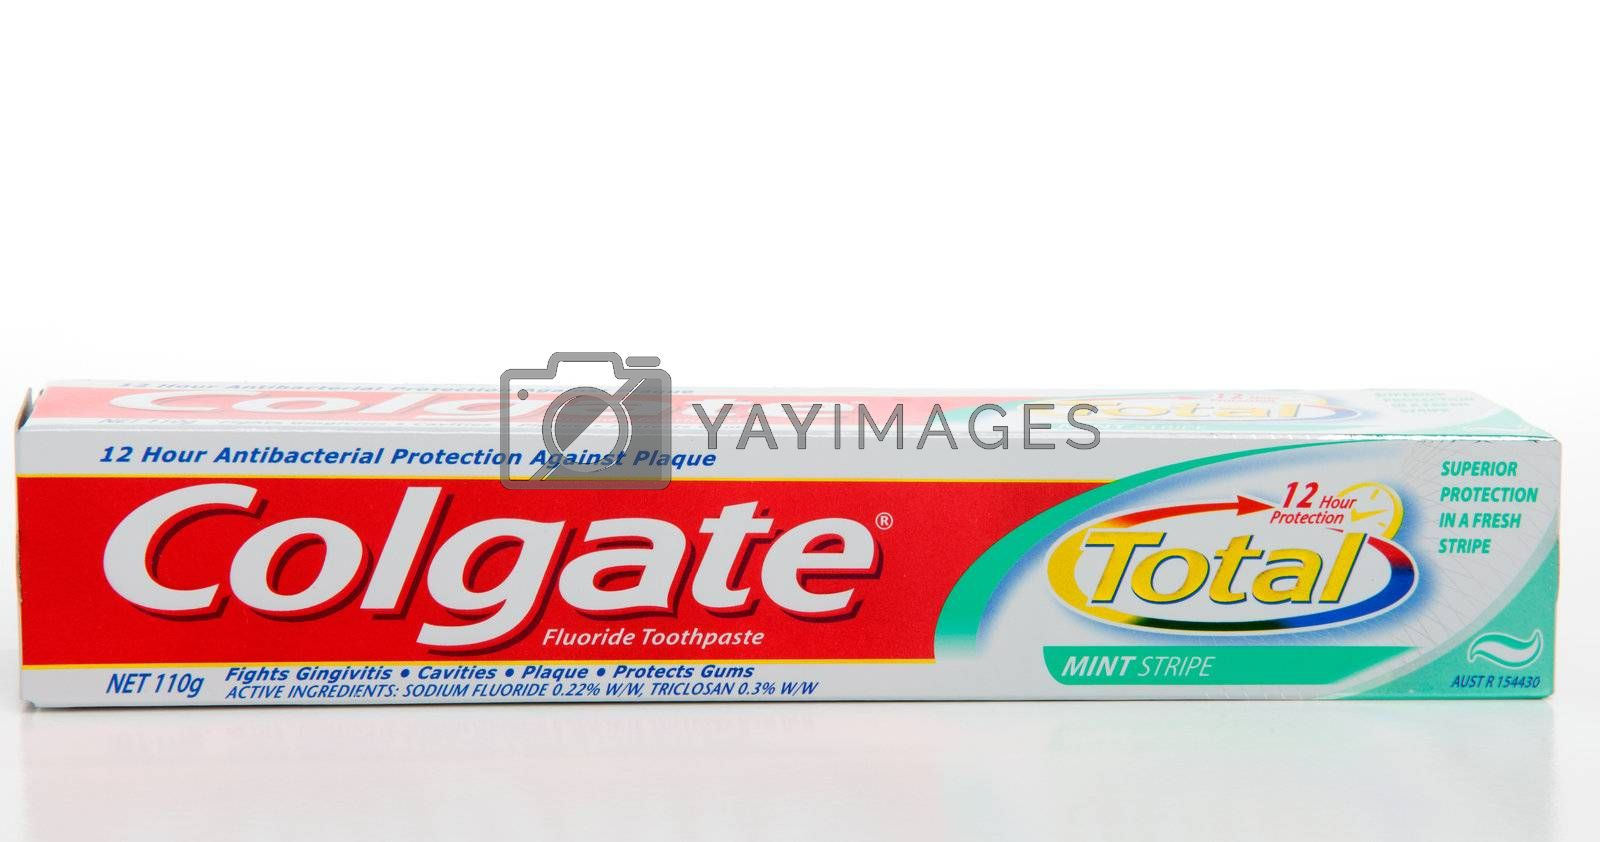 Colgate Total Protect toothpaste.  Provides 12 hours of antibacterial protection, fights gingivitis, cavities, plaque and protects gums.  White background.  Editorial Use Only.